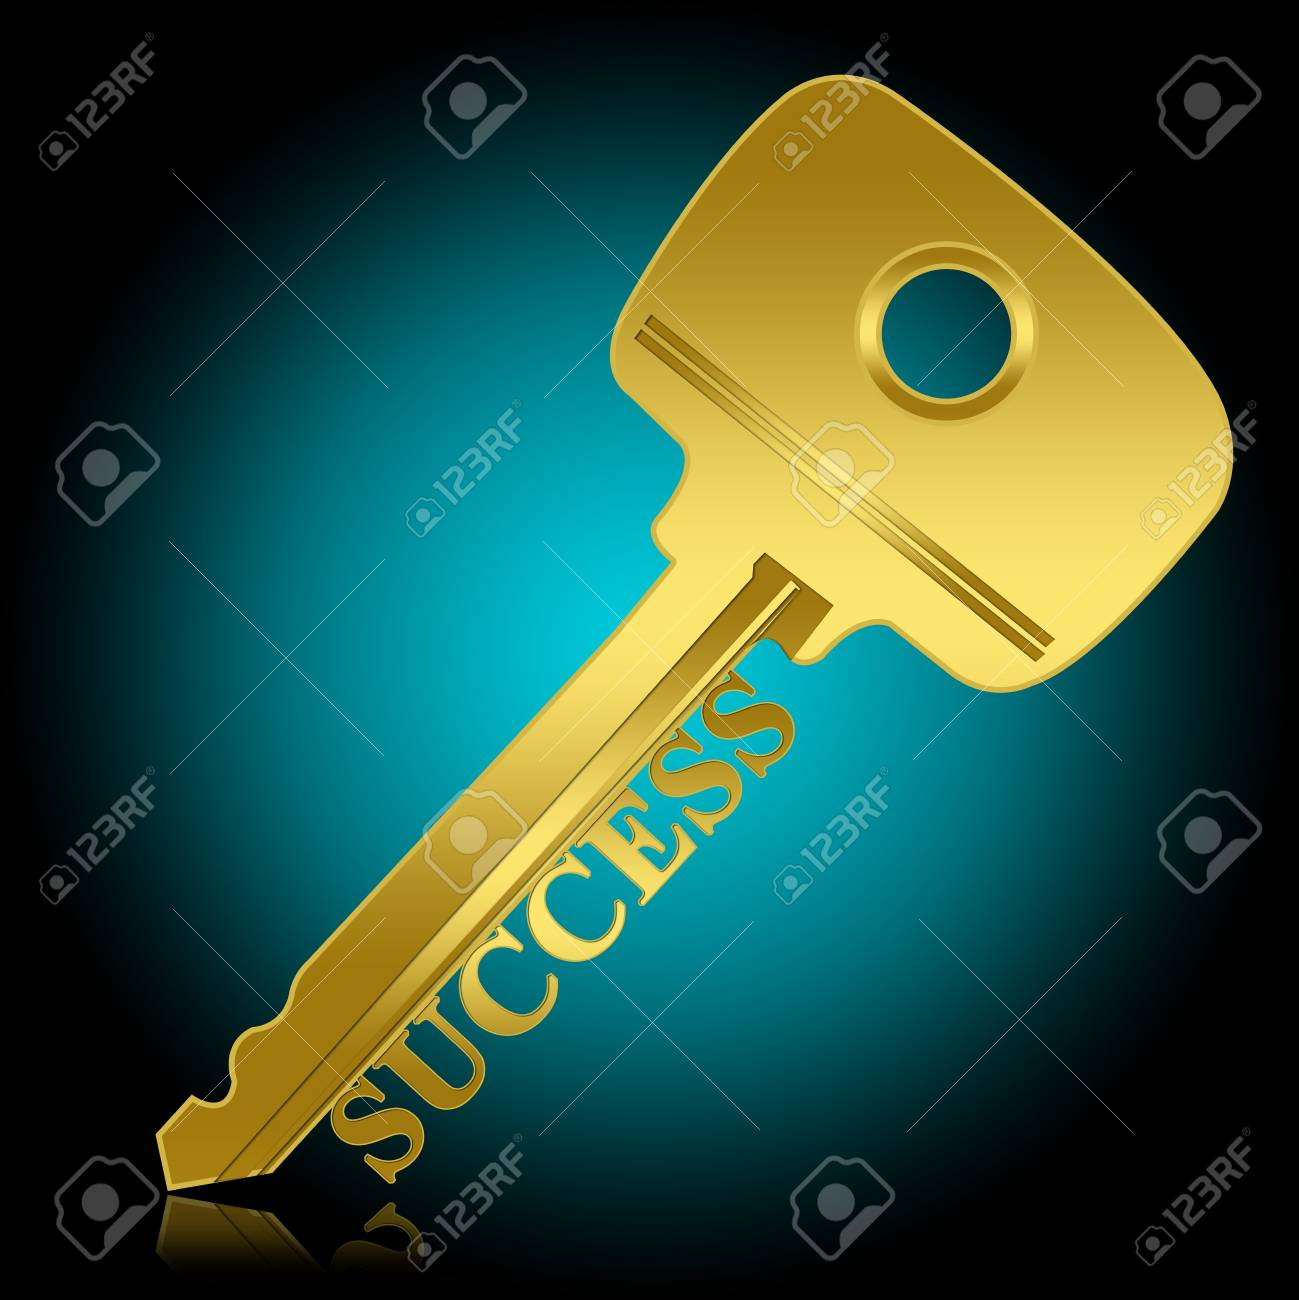 Key to Success Concept, Present By The Golden Key With Success Text With Blue Glossy Style Background Stock Photo - 17452862